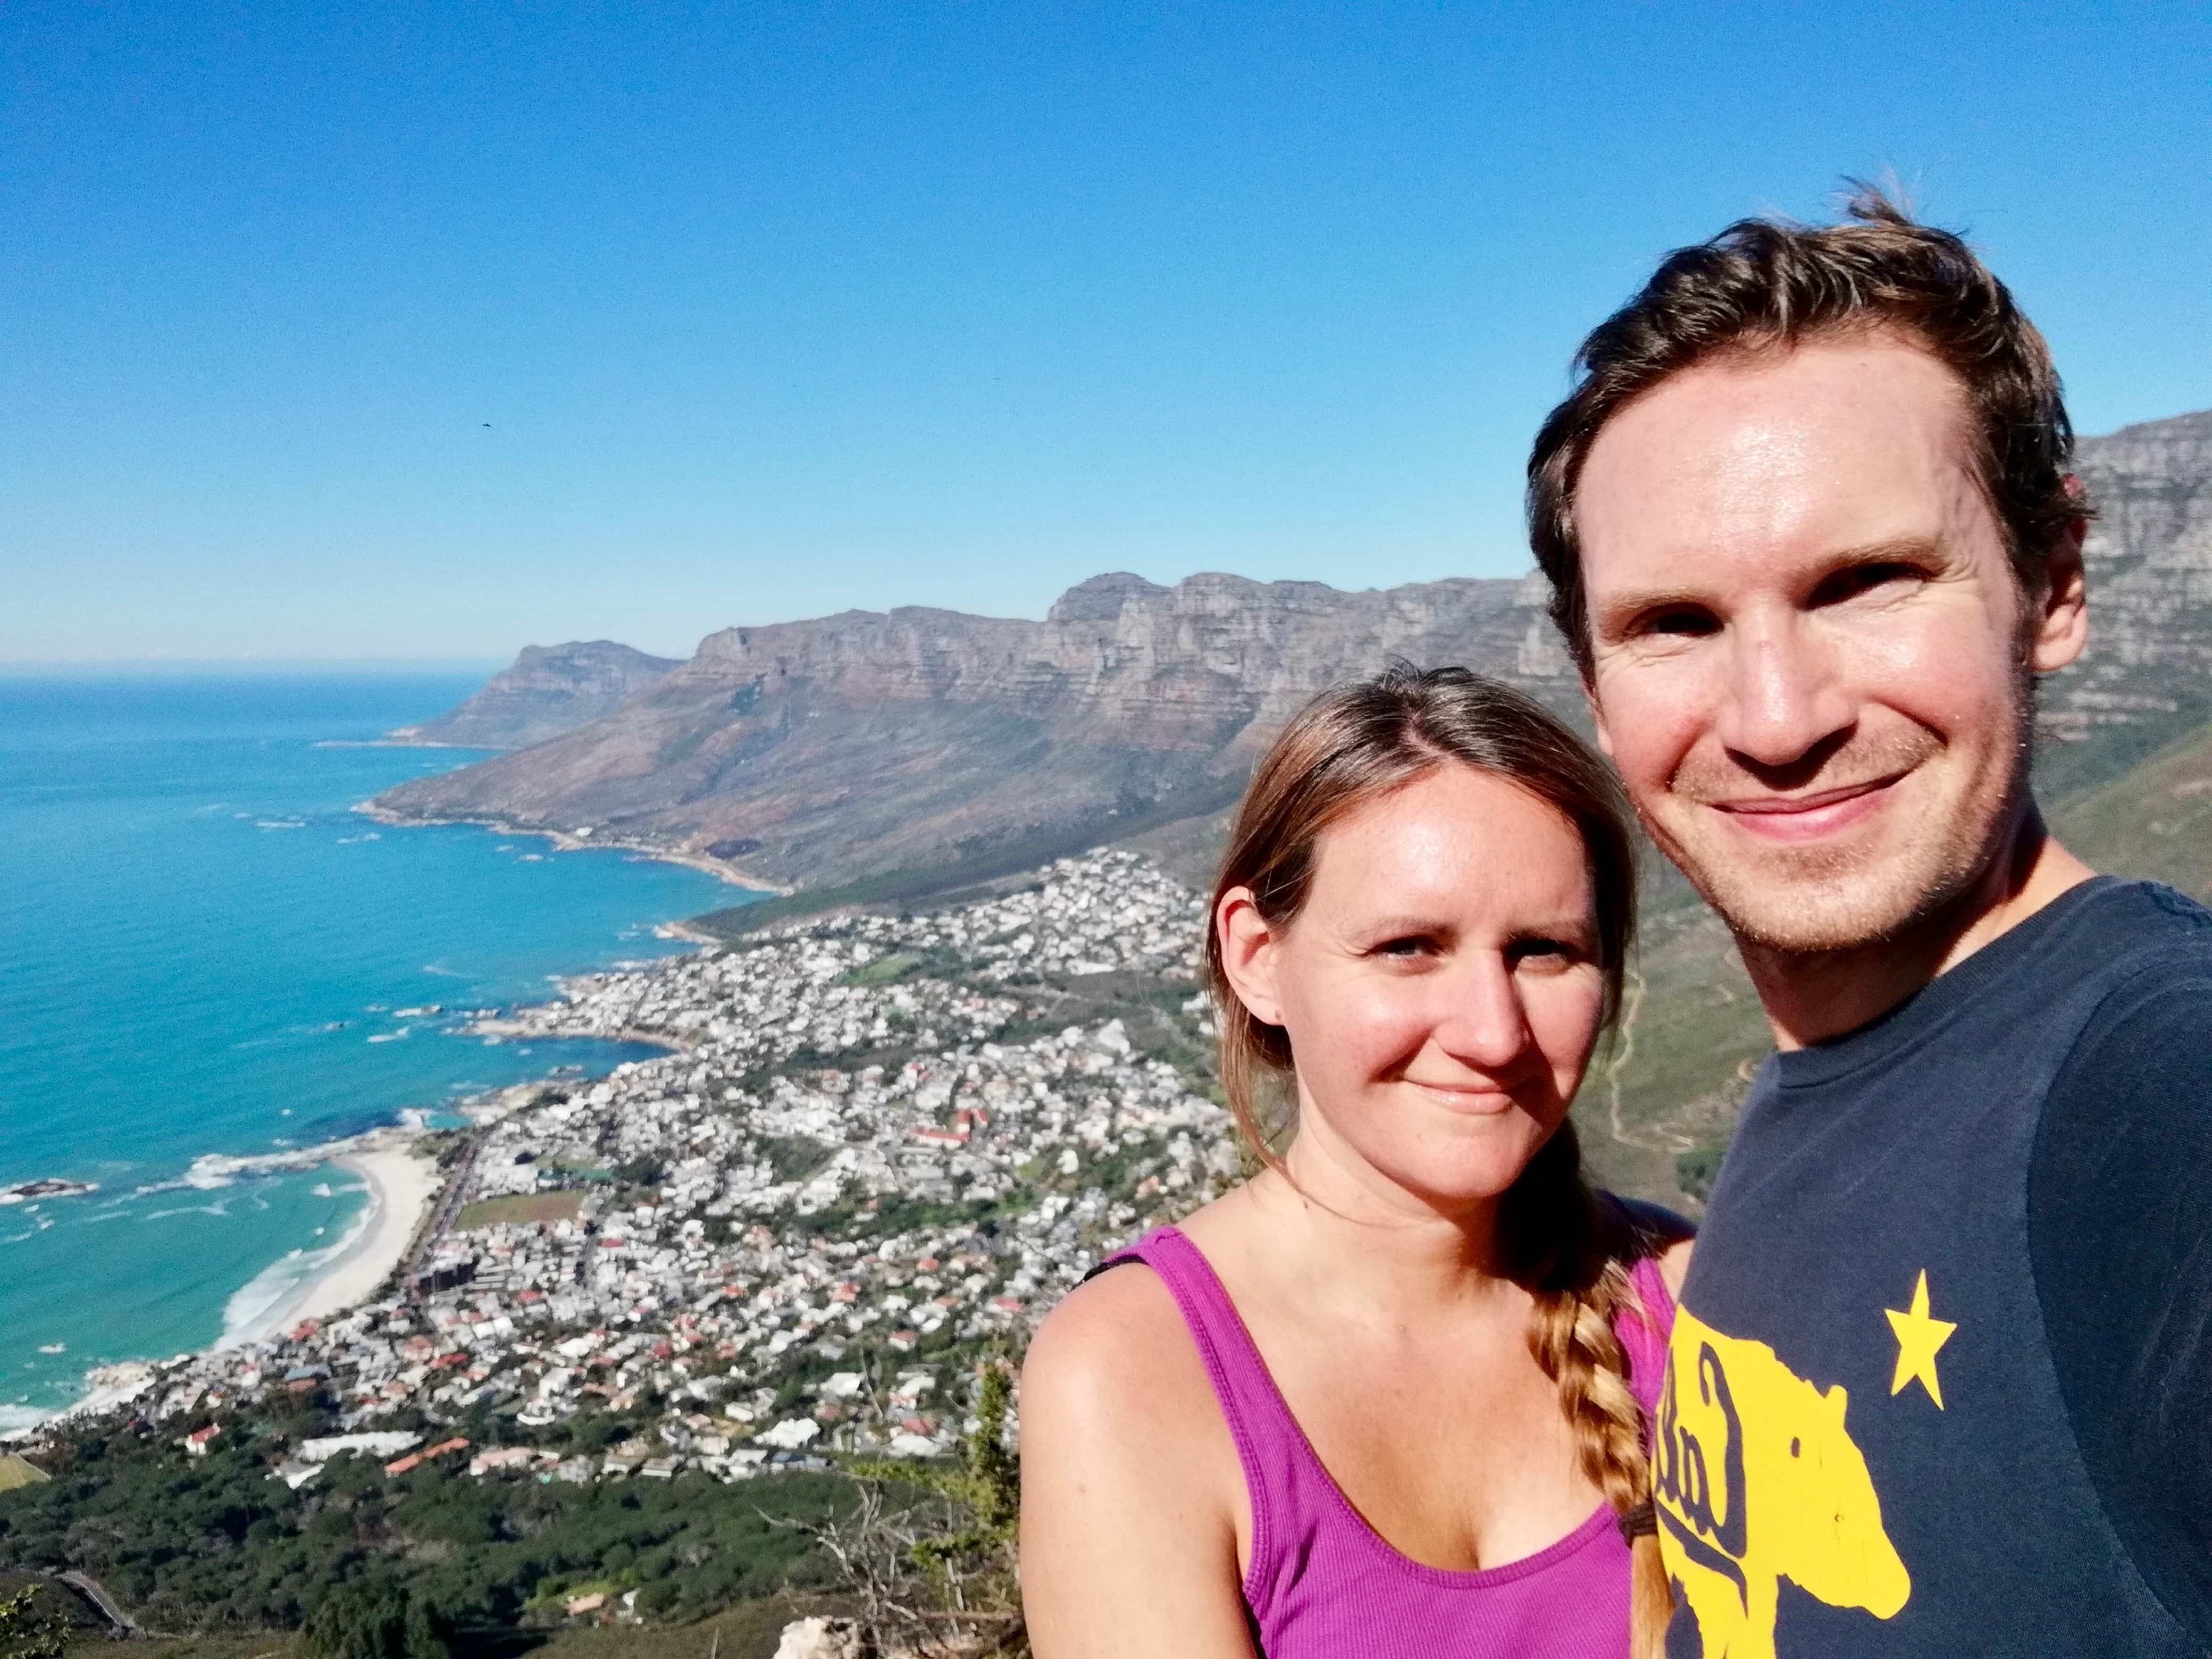 Us hiking Lion's Head in Cape Town